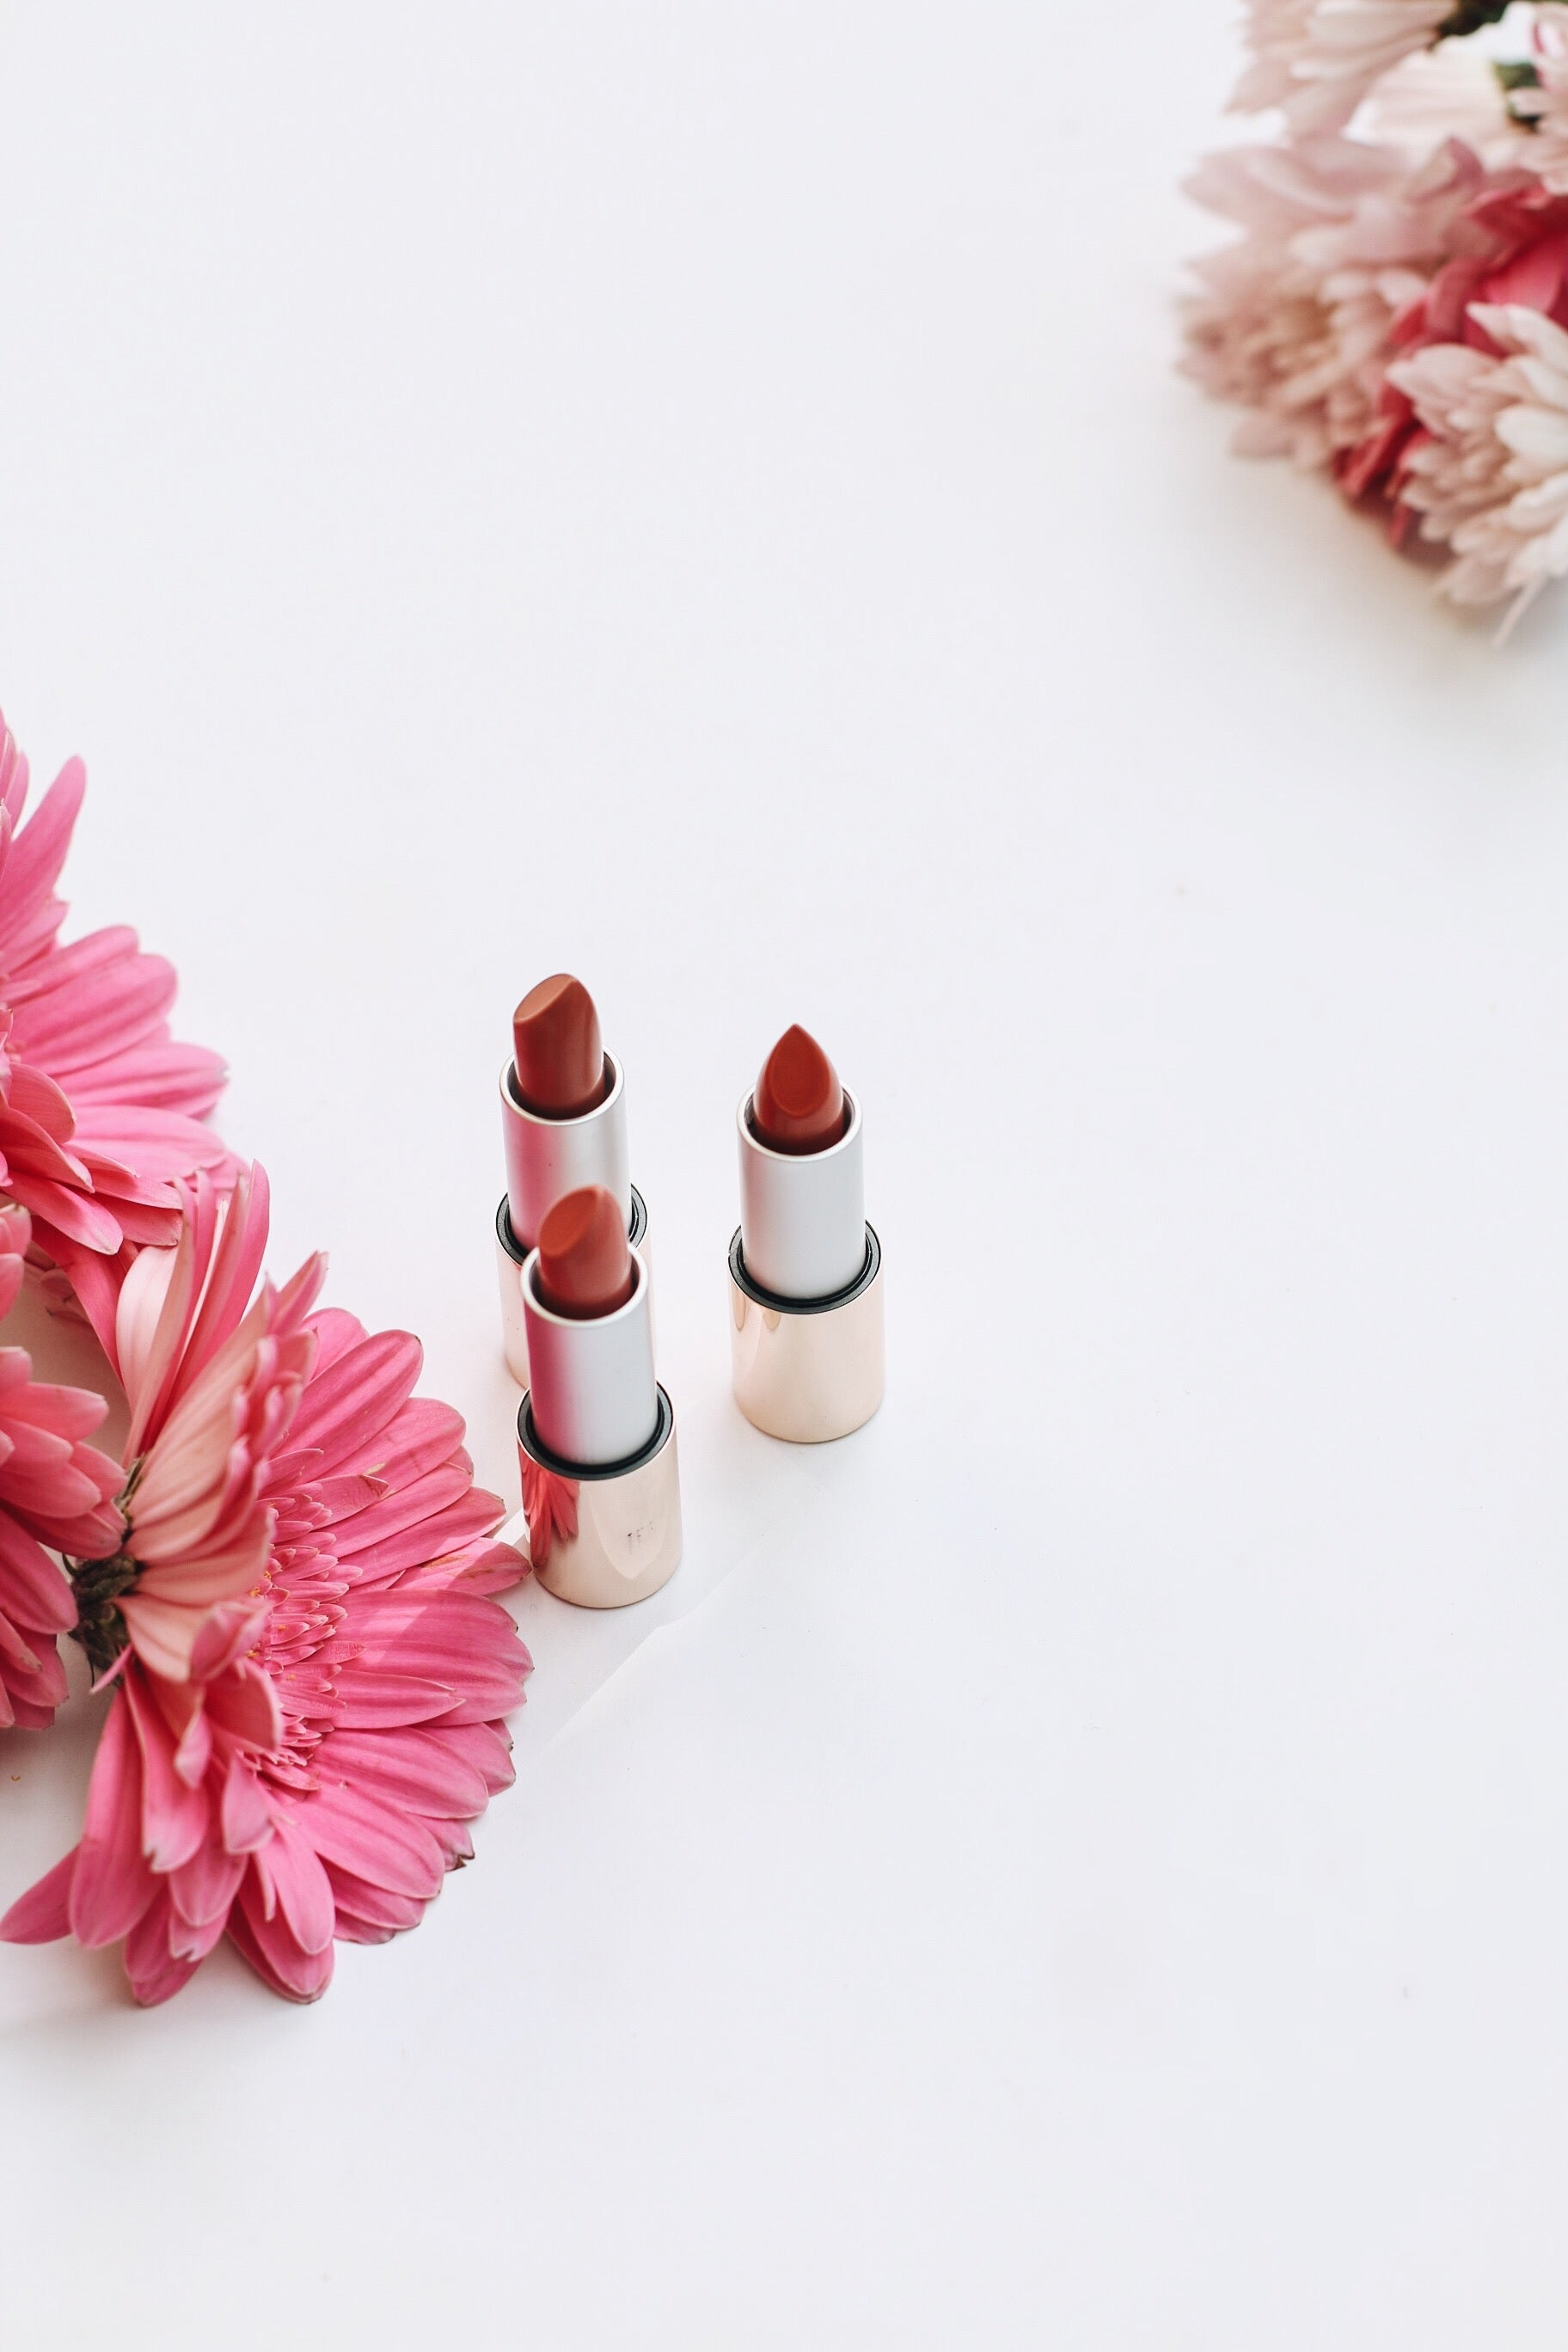 Triple Luxe Lipsticks in pink shades